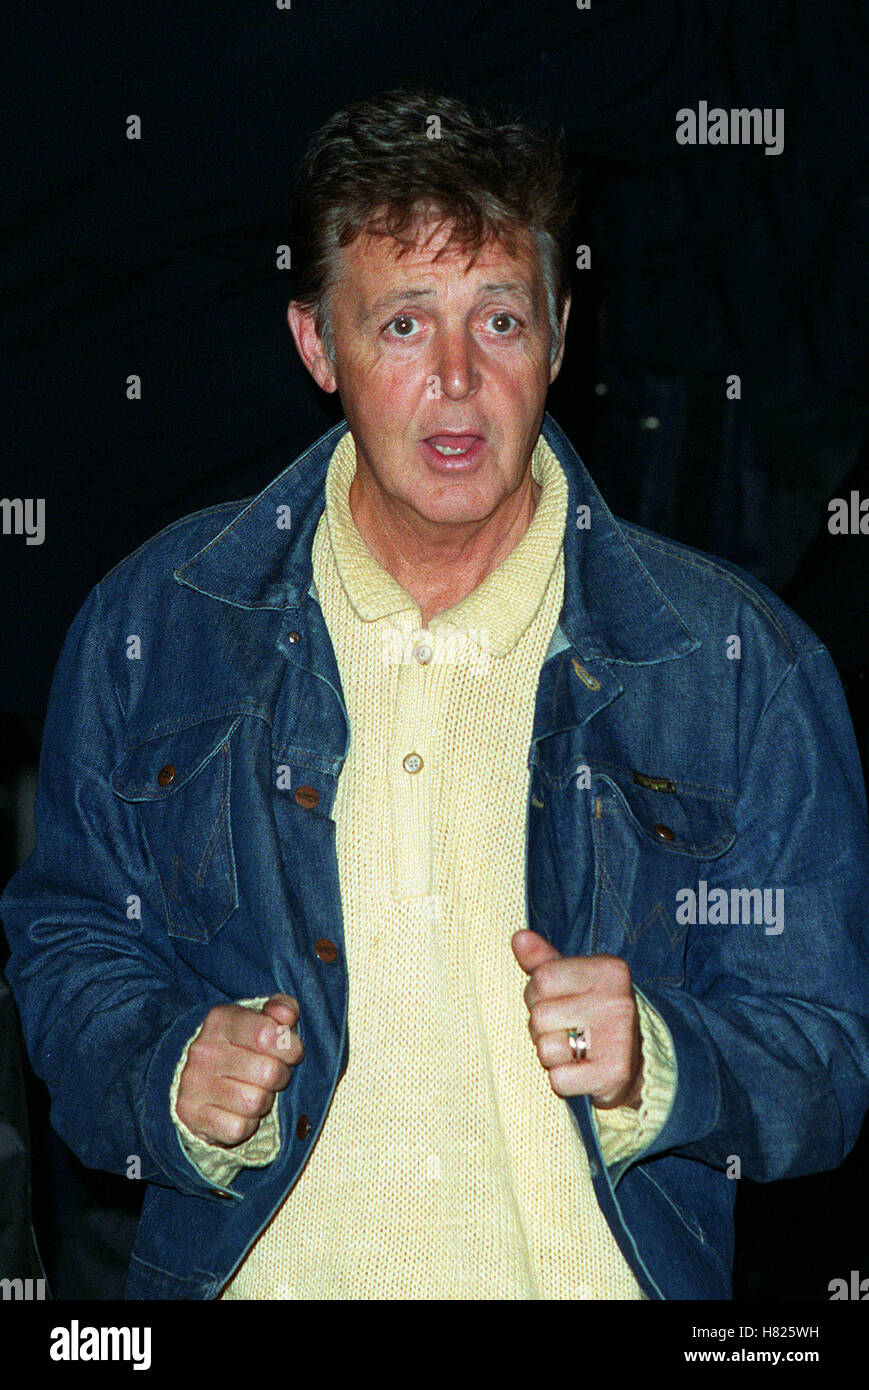 PAUL MCCARTNEY LONDON ENGLAND 02 February 2000